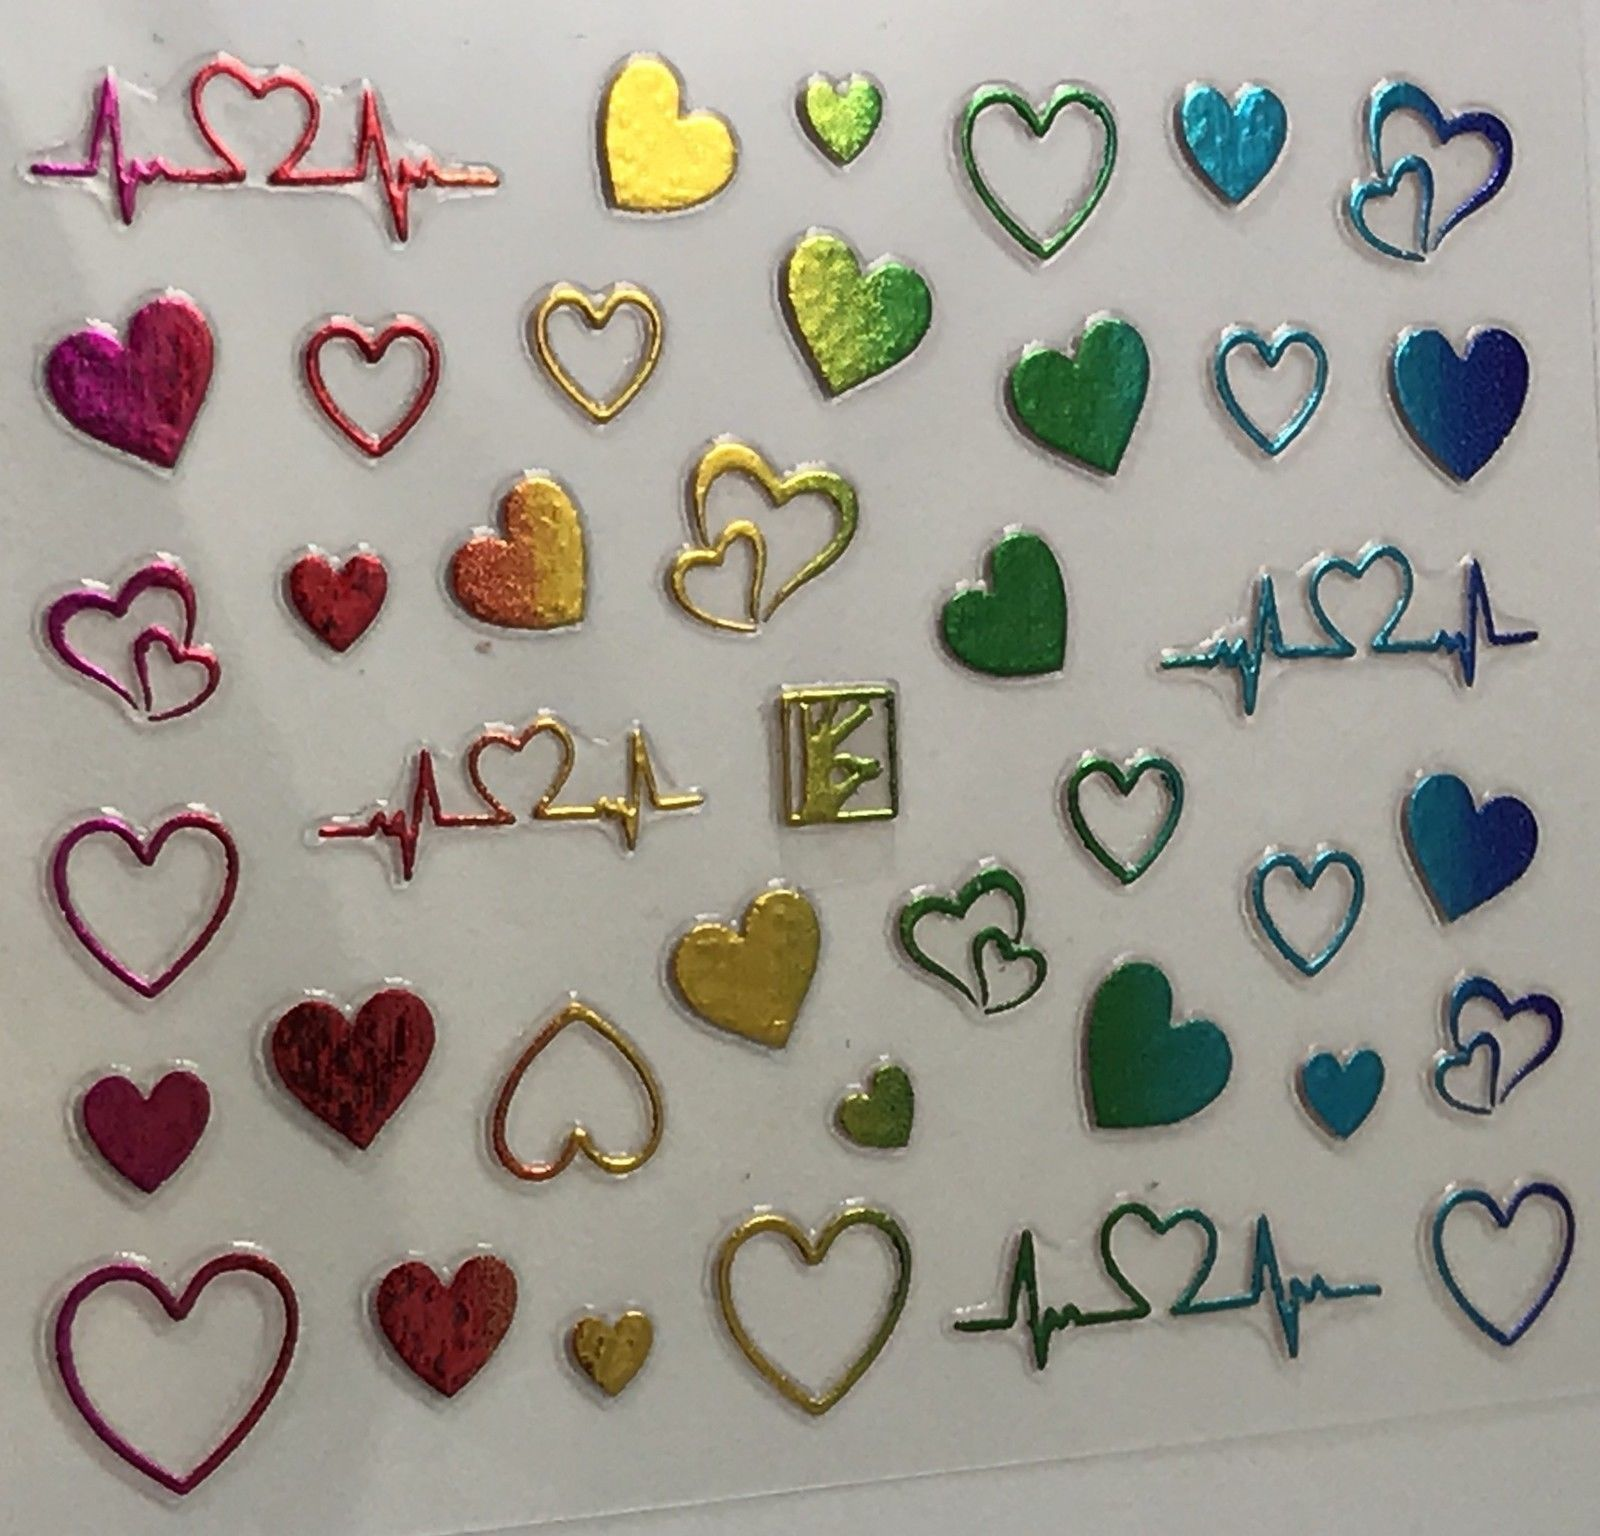 BANG STORE Nail Art 3D Decal Stickers Multicolored Metallic Heart Heartbeat Line